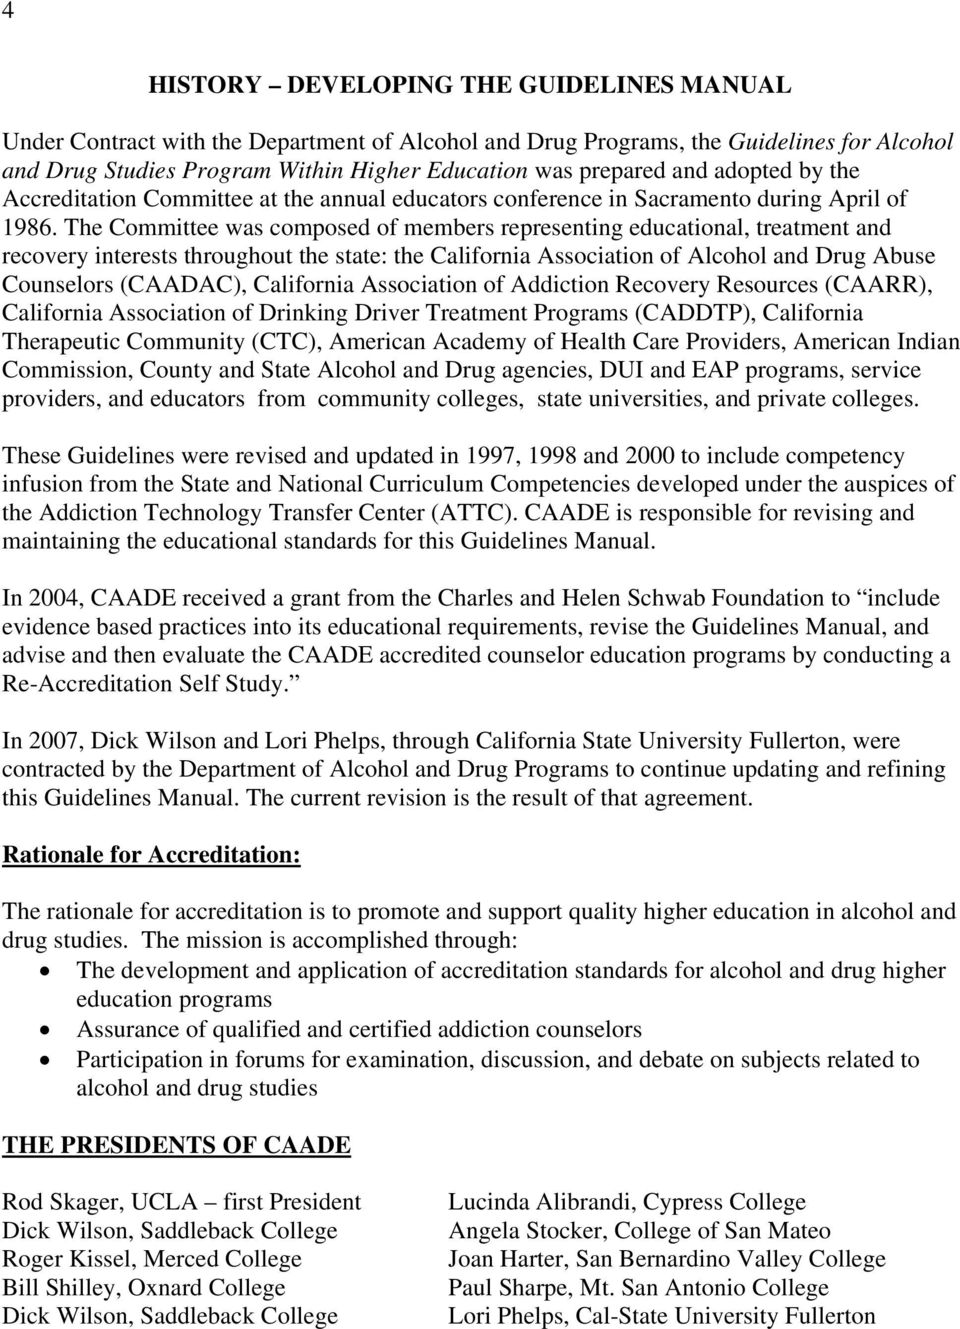 The Committee was composed of members representing educational, treatment and recovery interests throughout the state: the California Association of Alcohol and Drug Abuse Counselors (CAADAC),